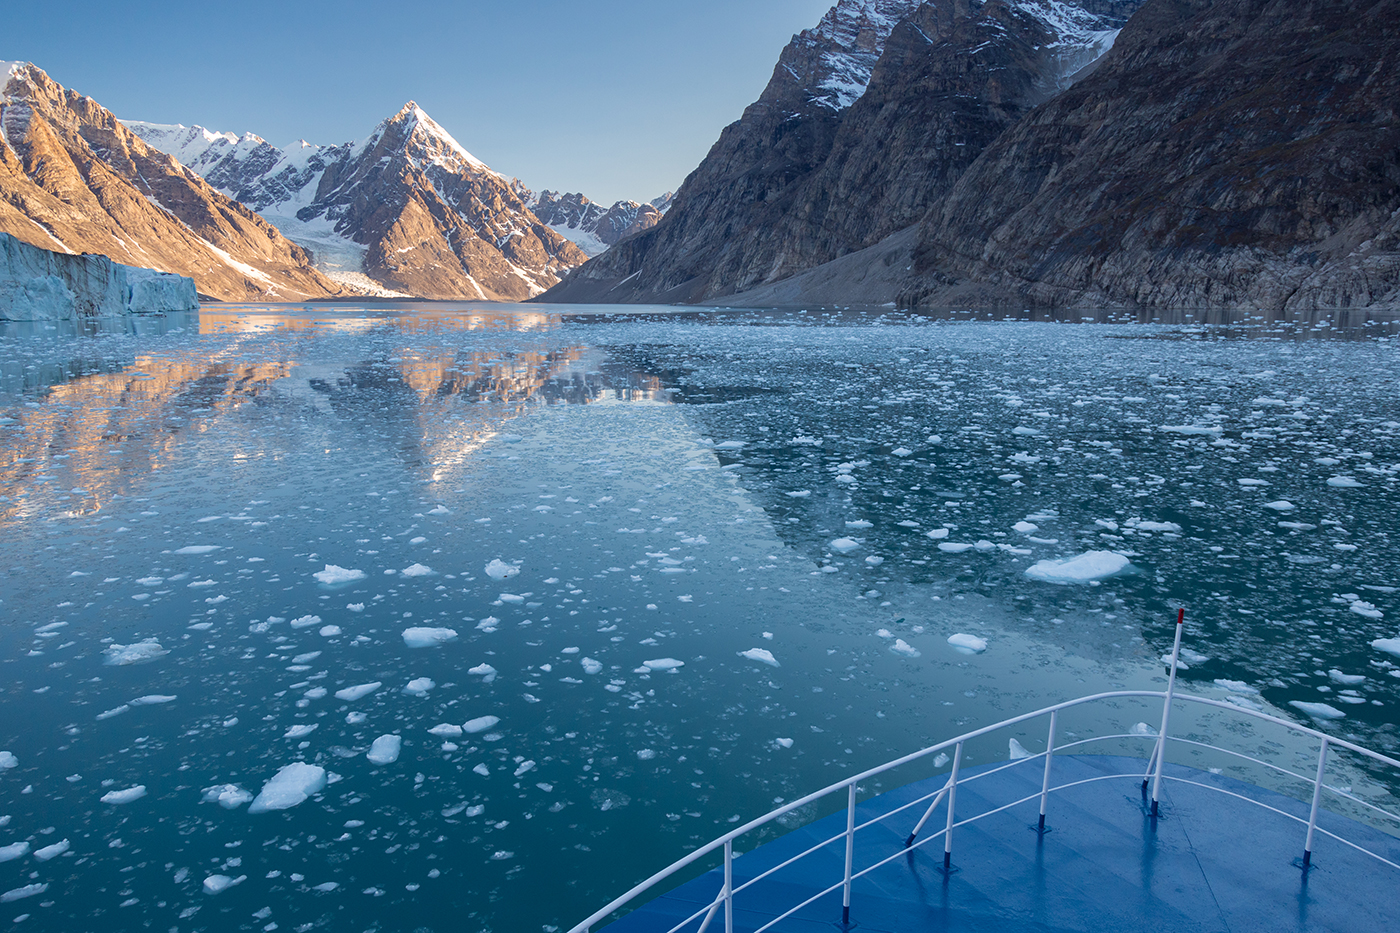 The Ocean Nova navigates the glacial ice of Alpefjord, East Greenland. Photo by Acacia Johnson